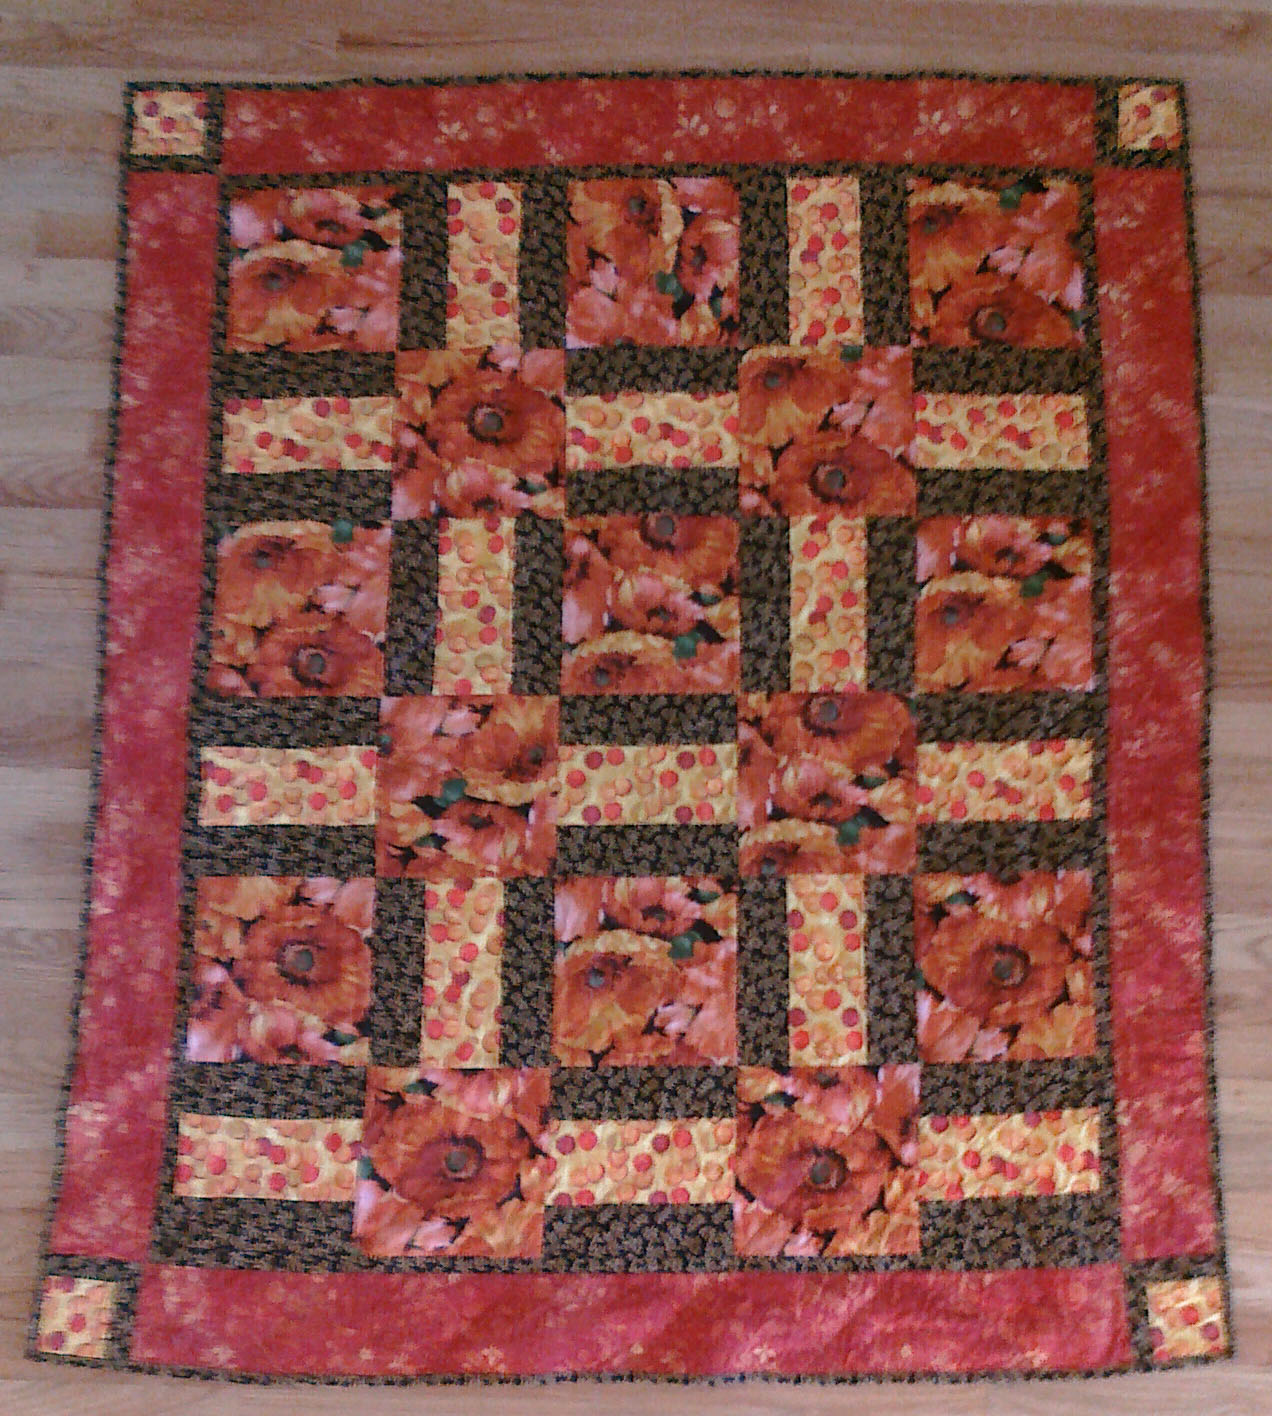 Creative Expressions: Large Print Quilts